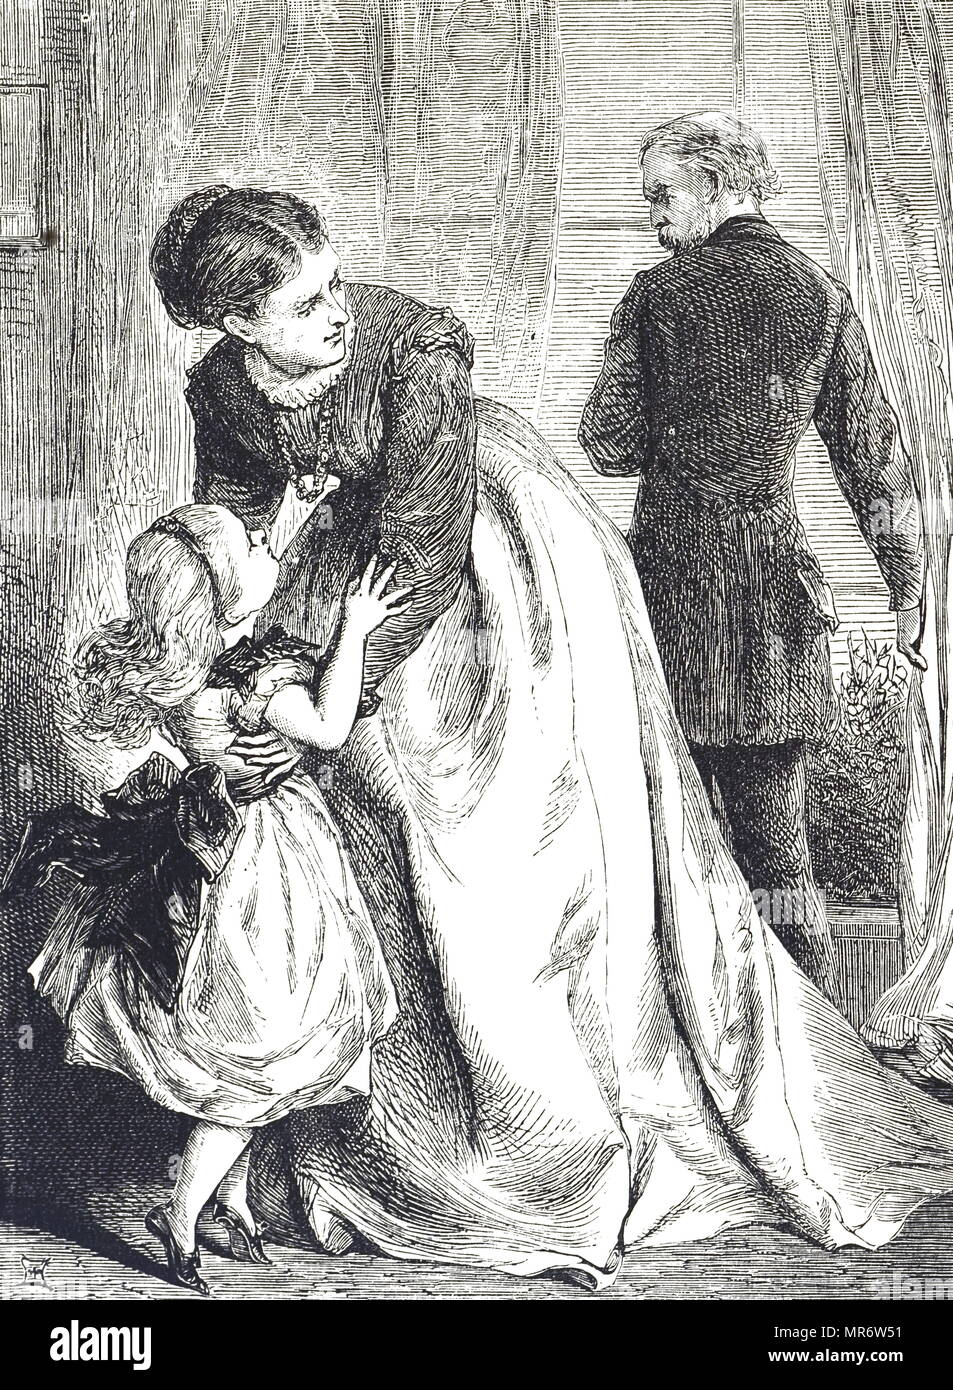 Engraving Depicting A Child Seeking Protection From Her Angry Father